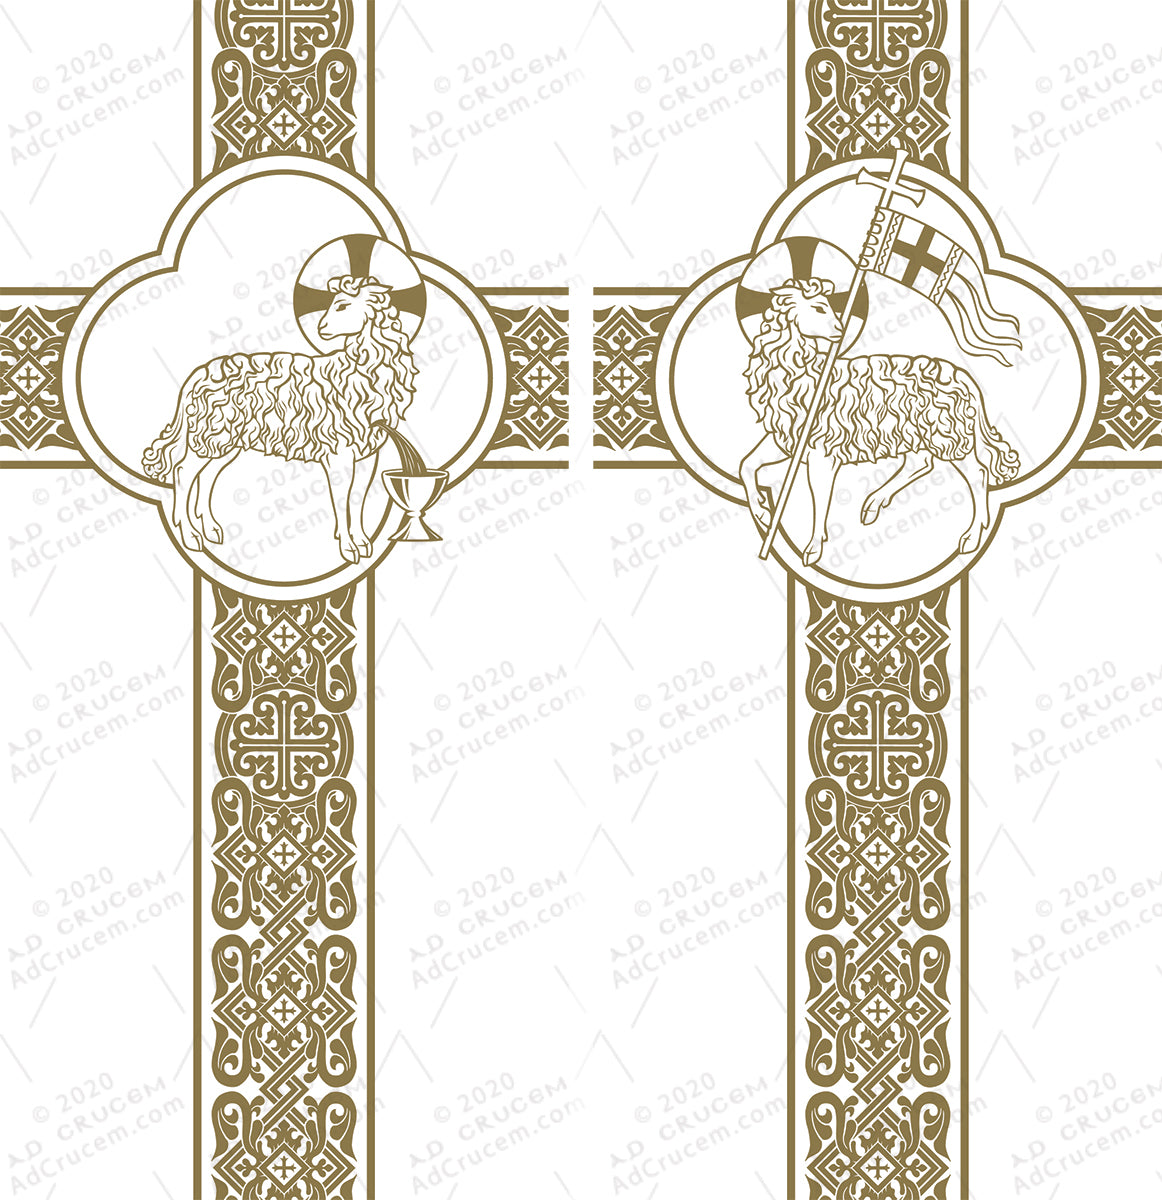 Ad Crucem Agnus Dei White Banners Set of Two